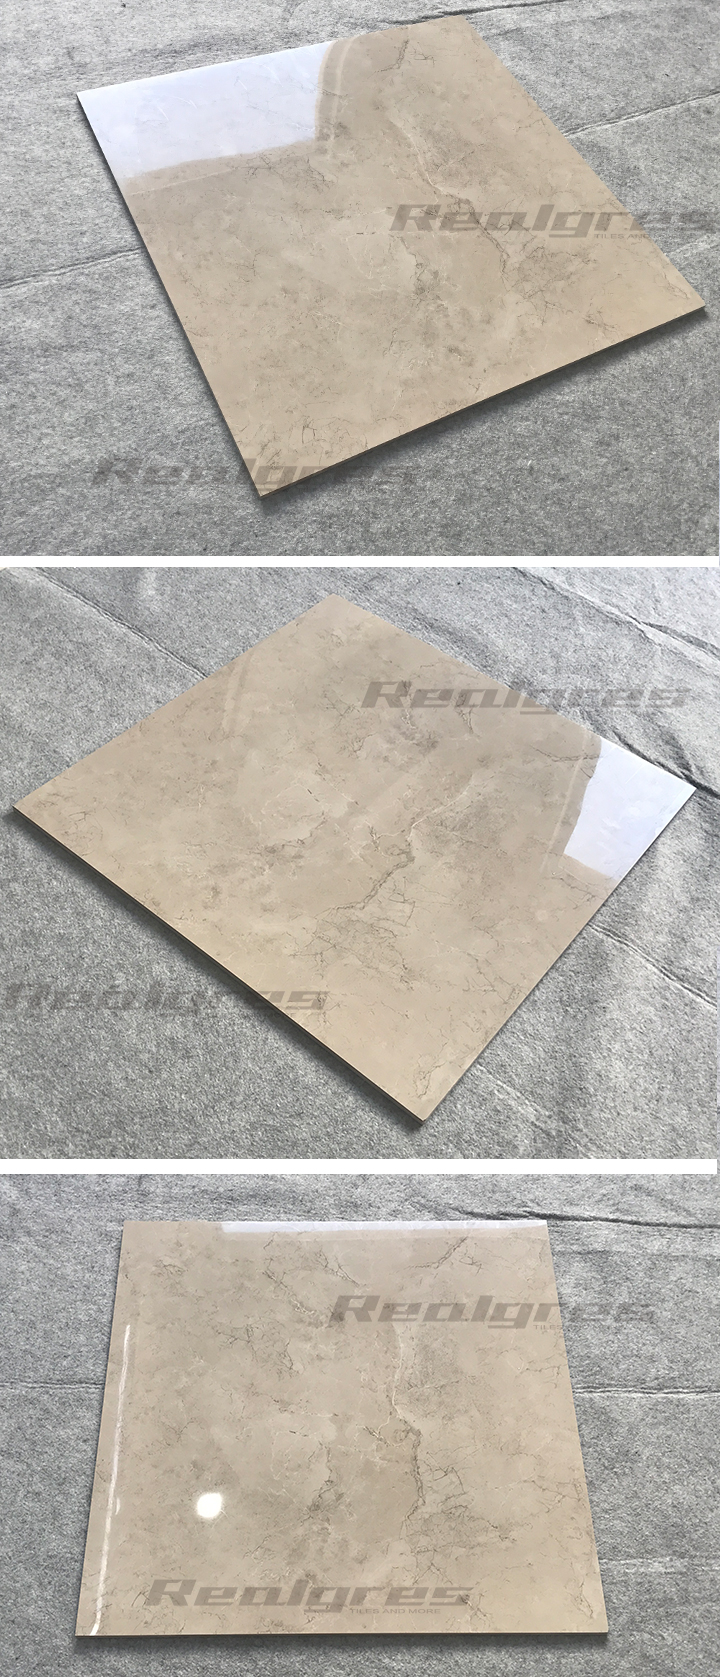 China 24x24 porcelanto floors tiles and bathroom rustic porcelain china 24x24 porcelanto floors tiles and bathroom rustic porcelain vitrified floor tiles with bangladesh price doublecrazyfo Choice Image